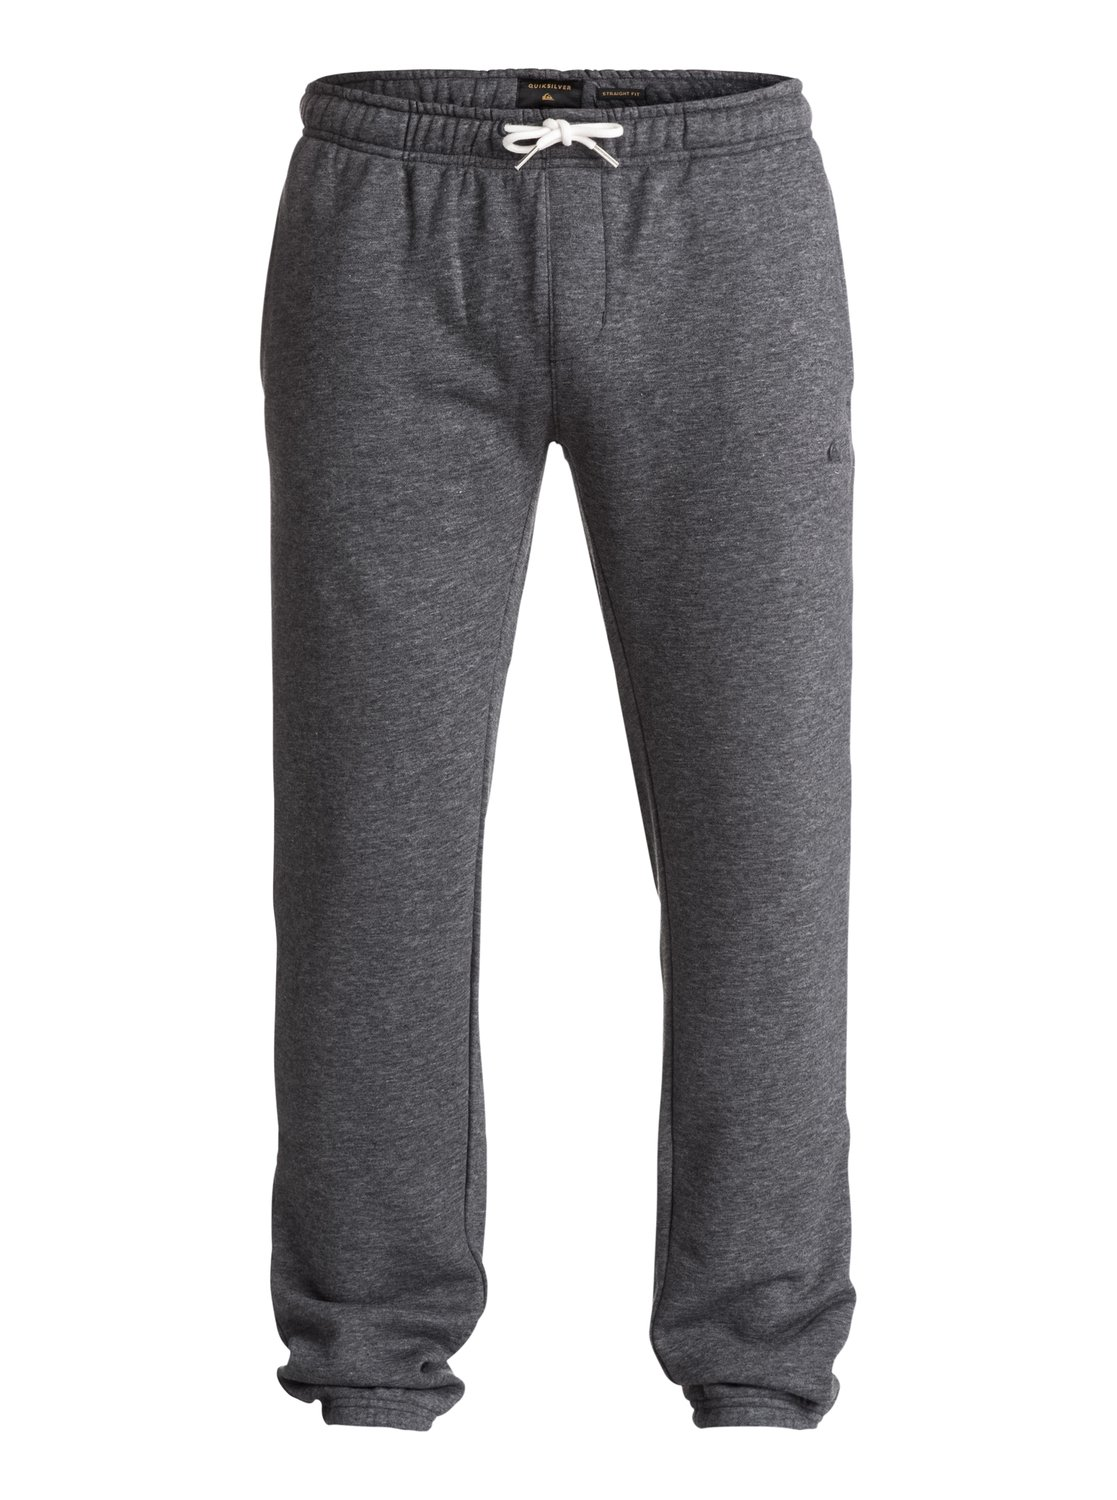 6b9dedd2 6 Everyday - Tracksuit Bottoms EQYFB03059 Quiksilver